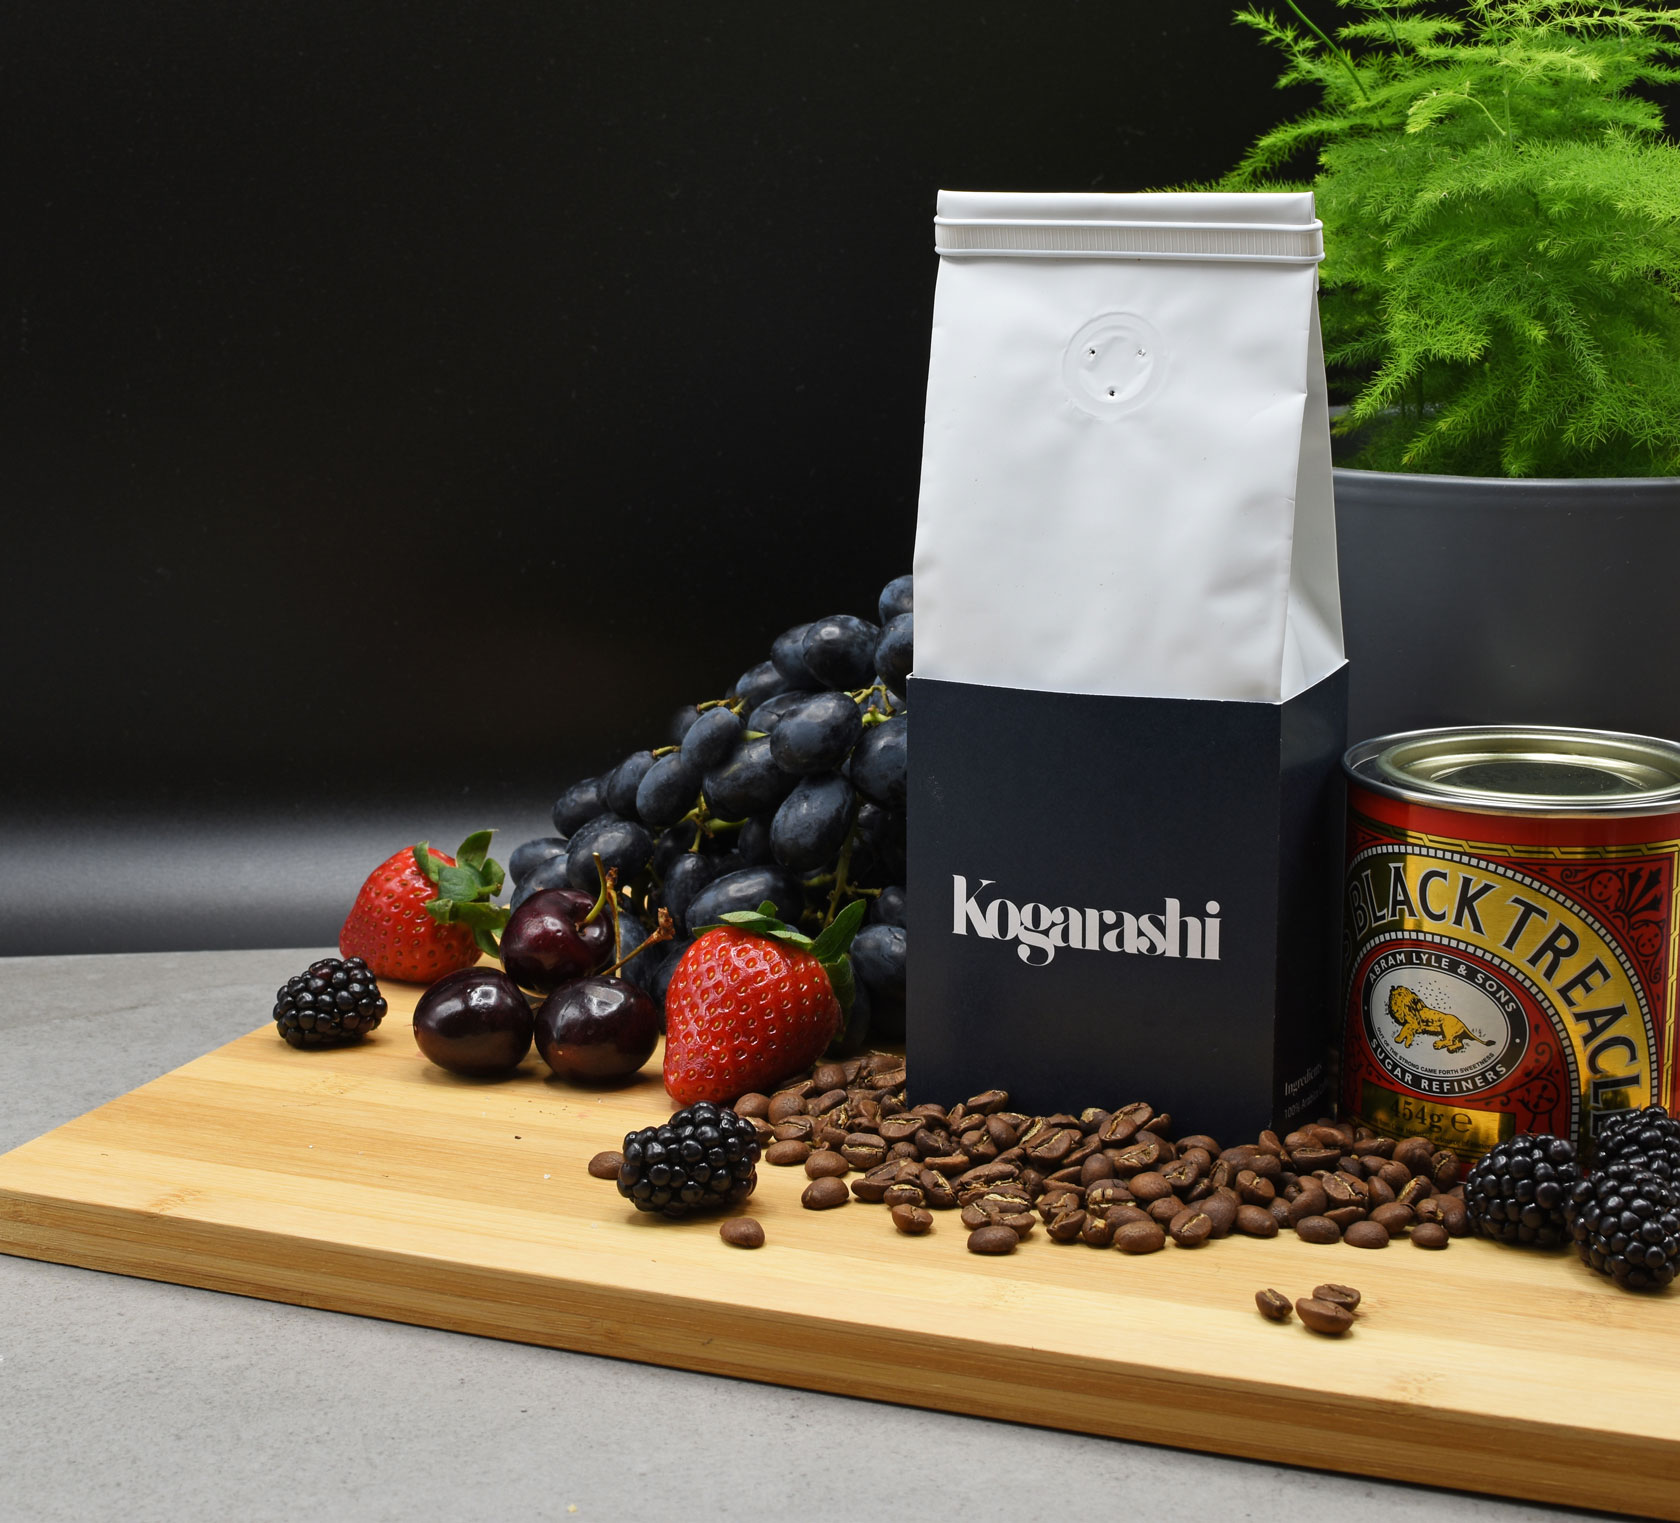 Image 1 of Kogarashi Coffee Product